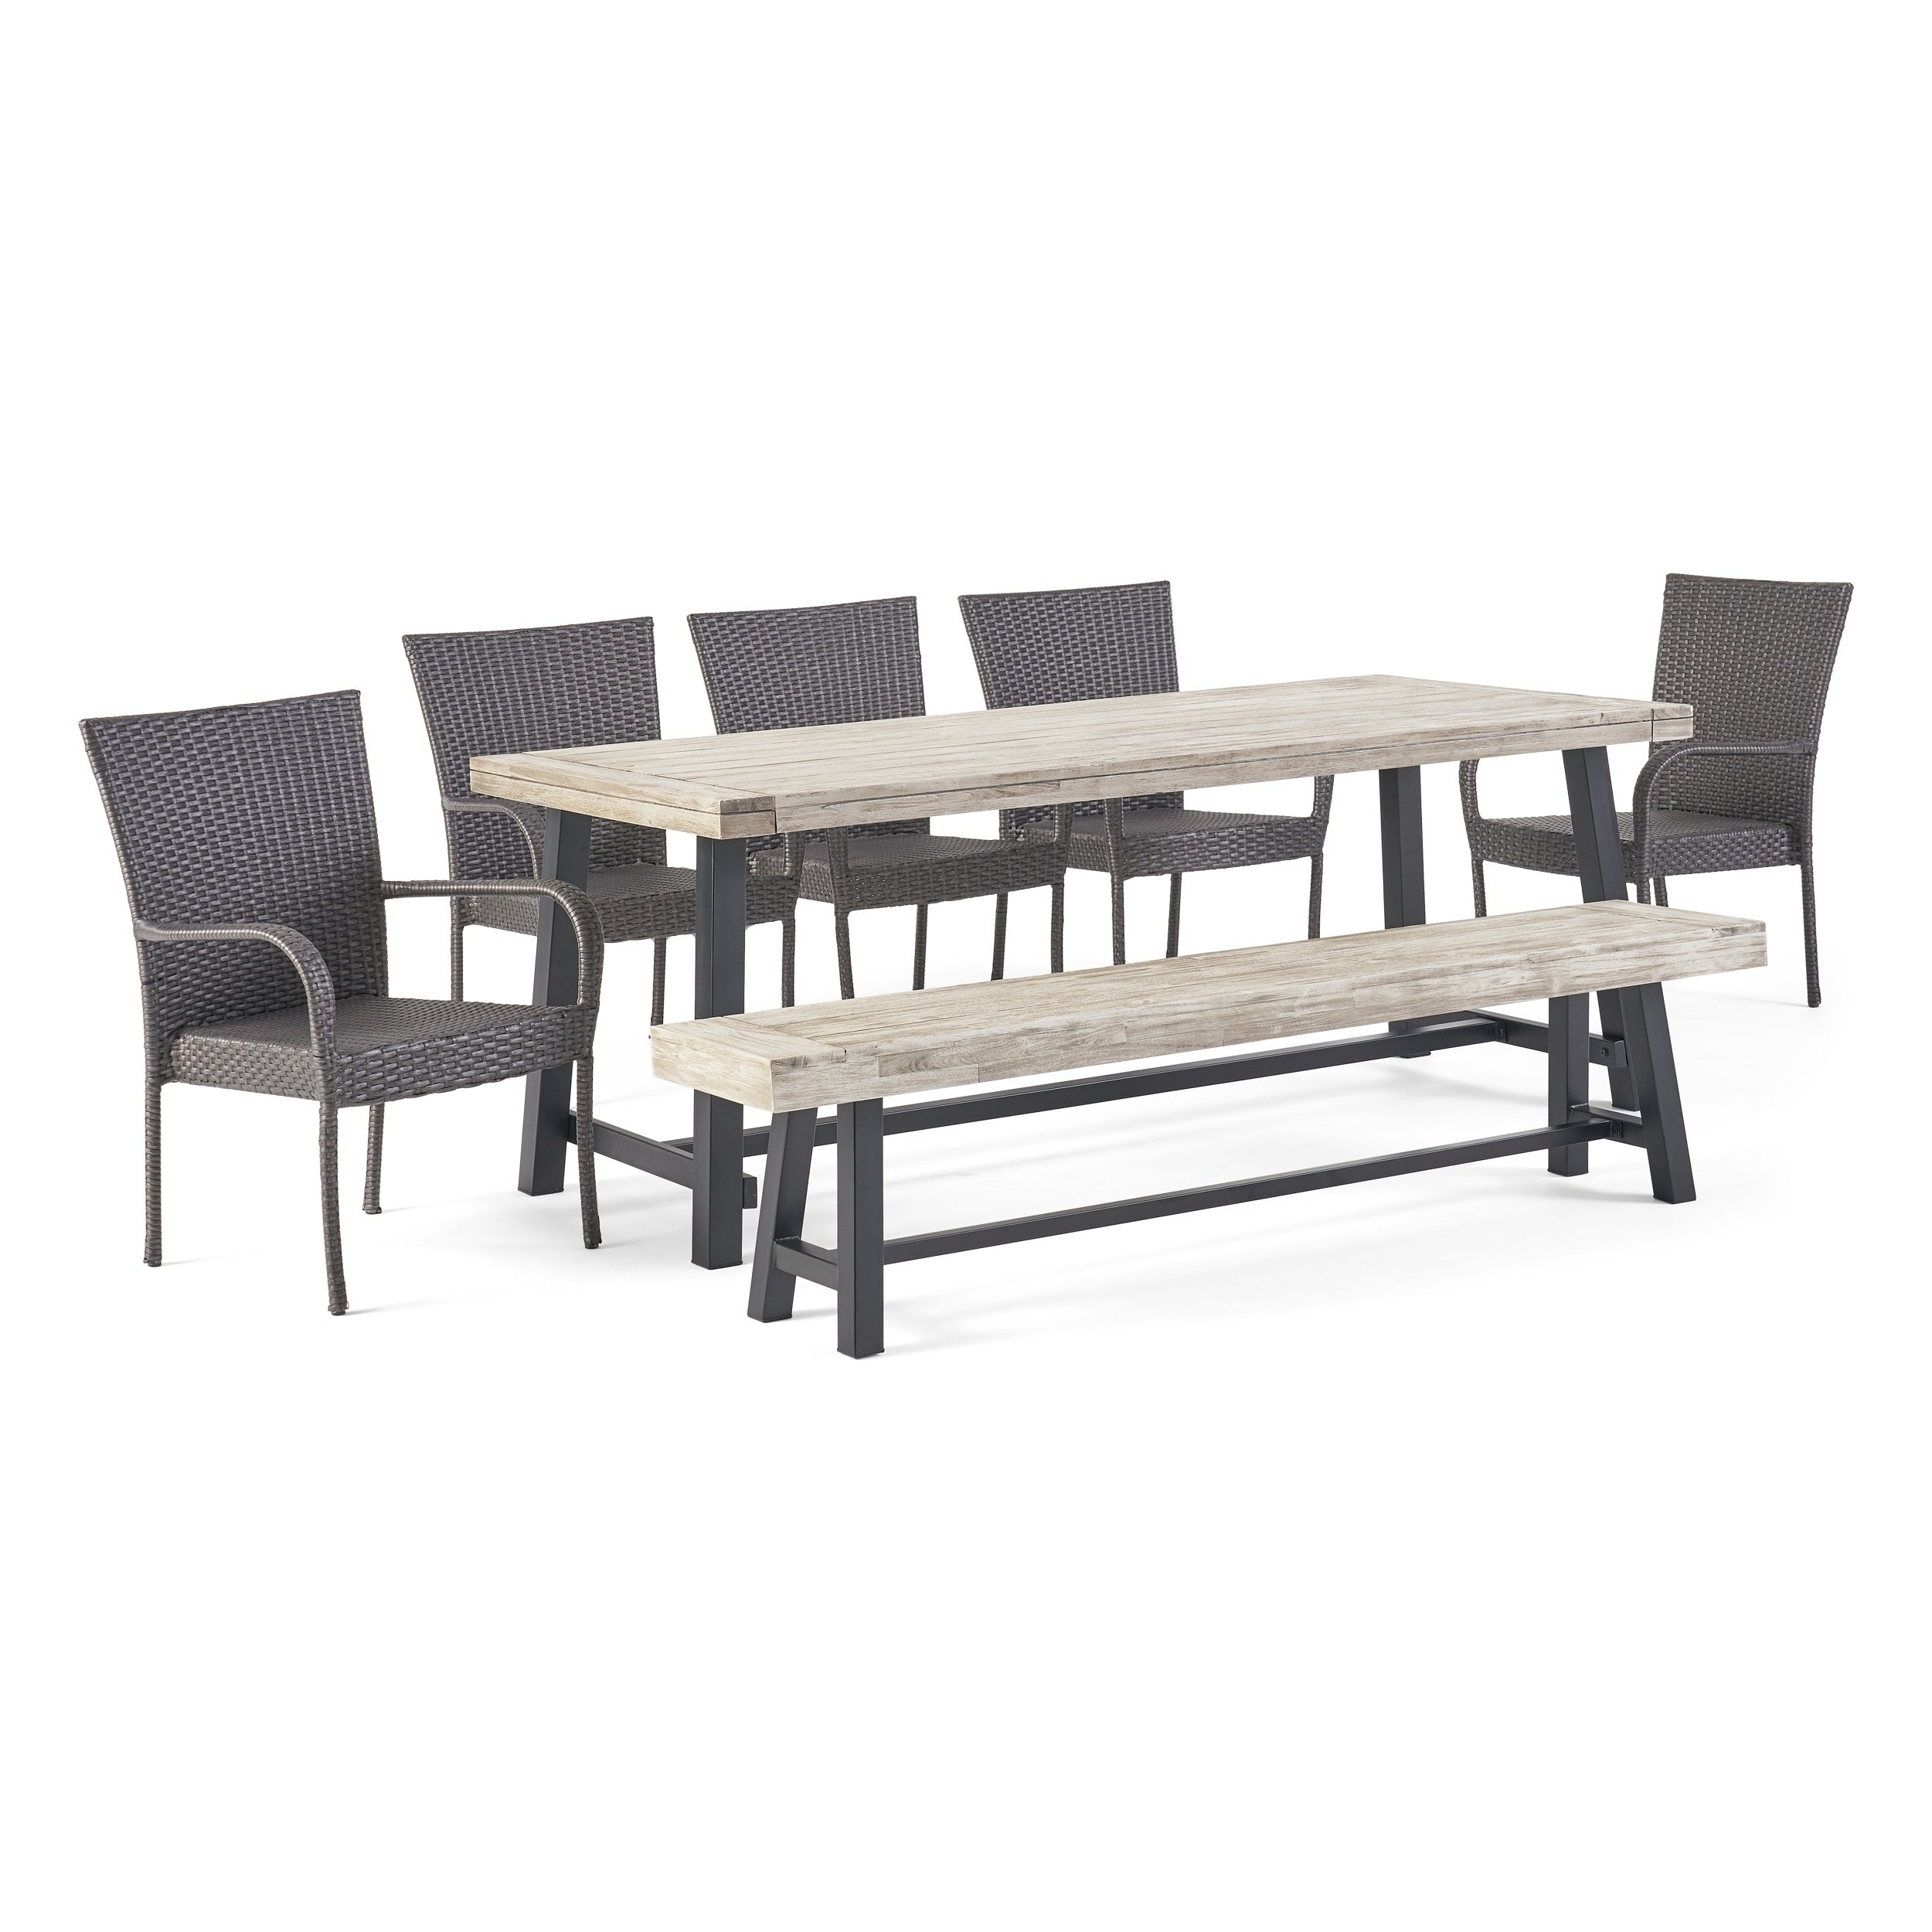 Lyons Outdoor Rustic Acacia Wood 8 Seater Dining Set With Bench By Christopher Knight Home